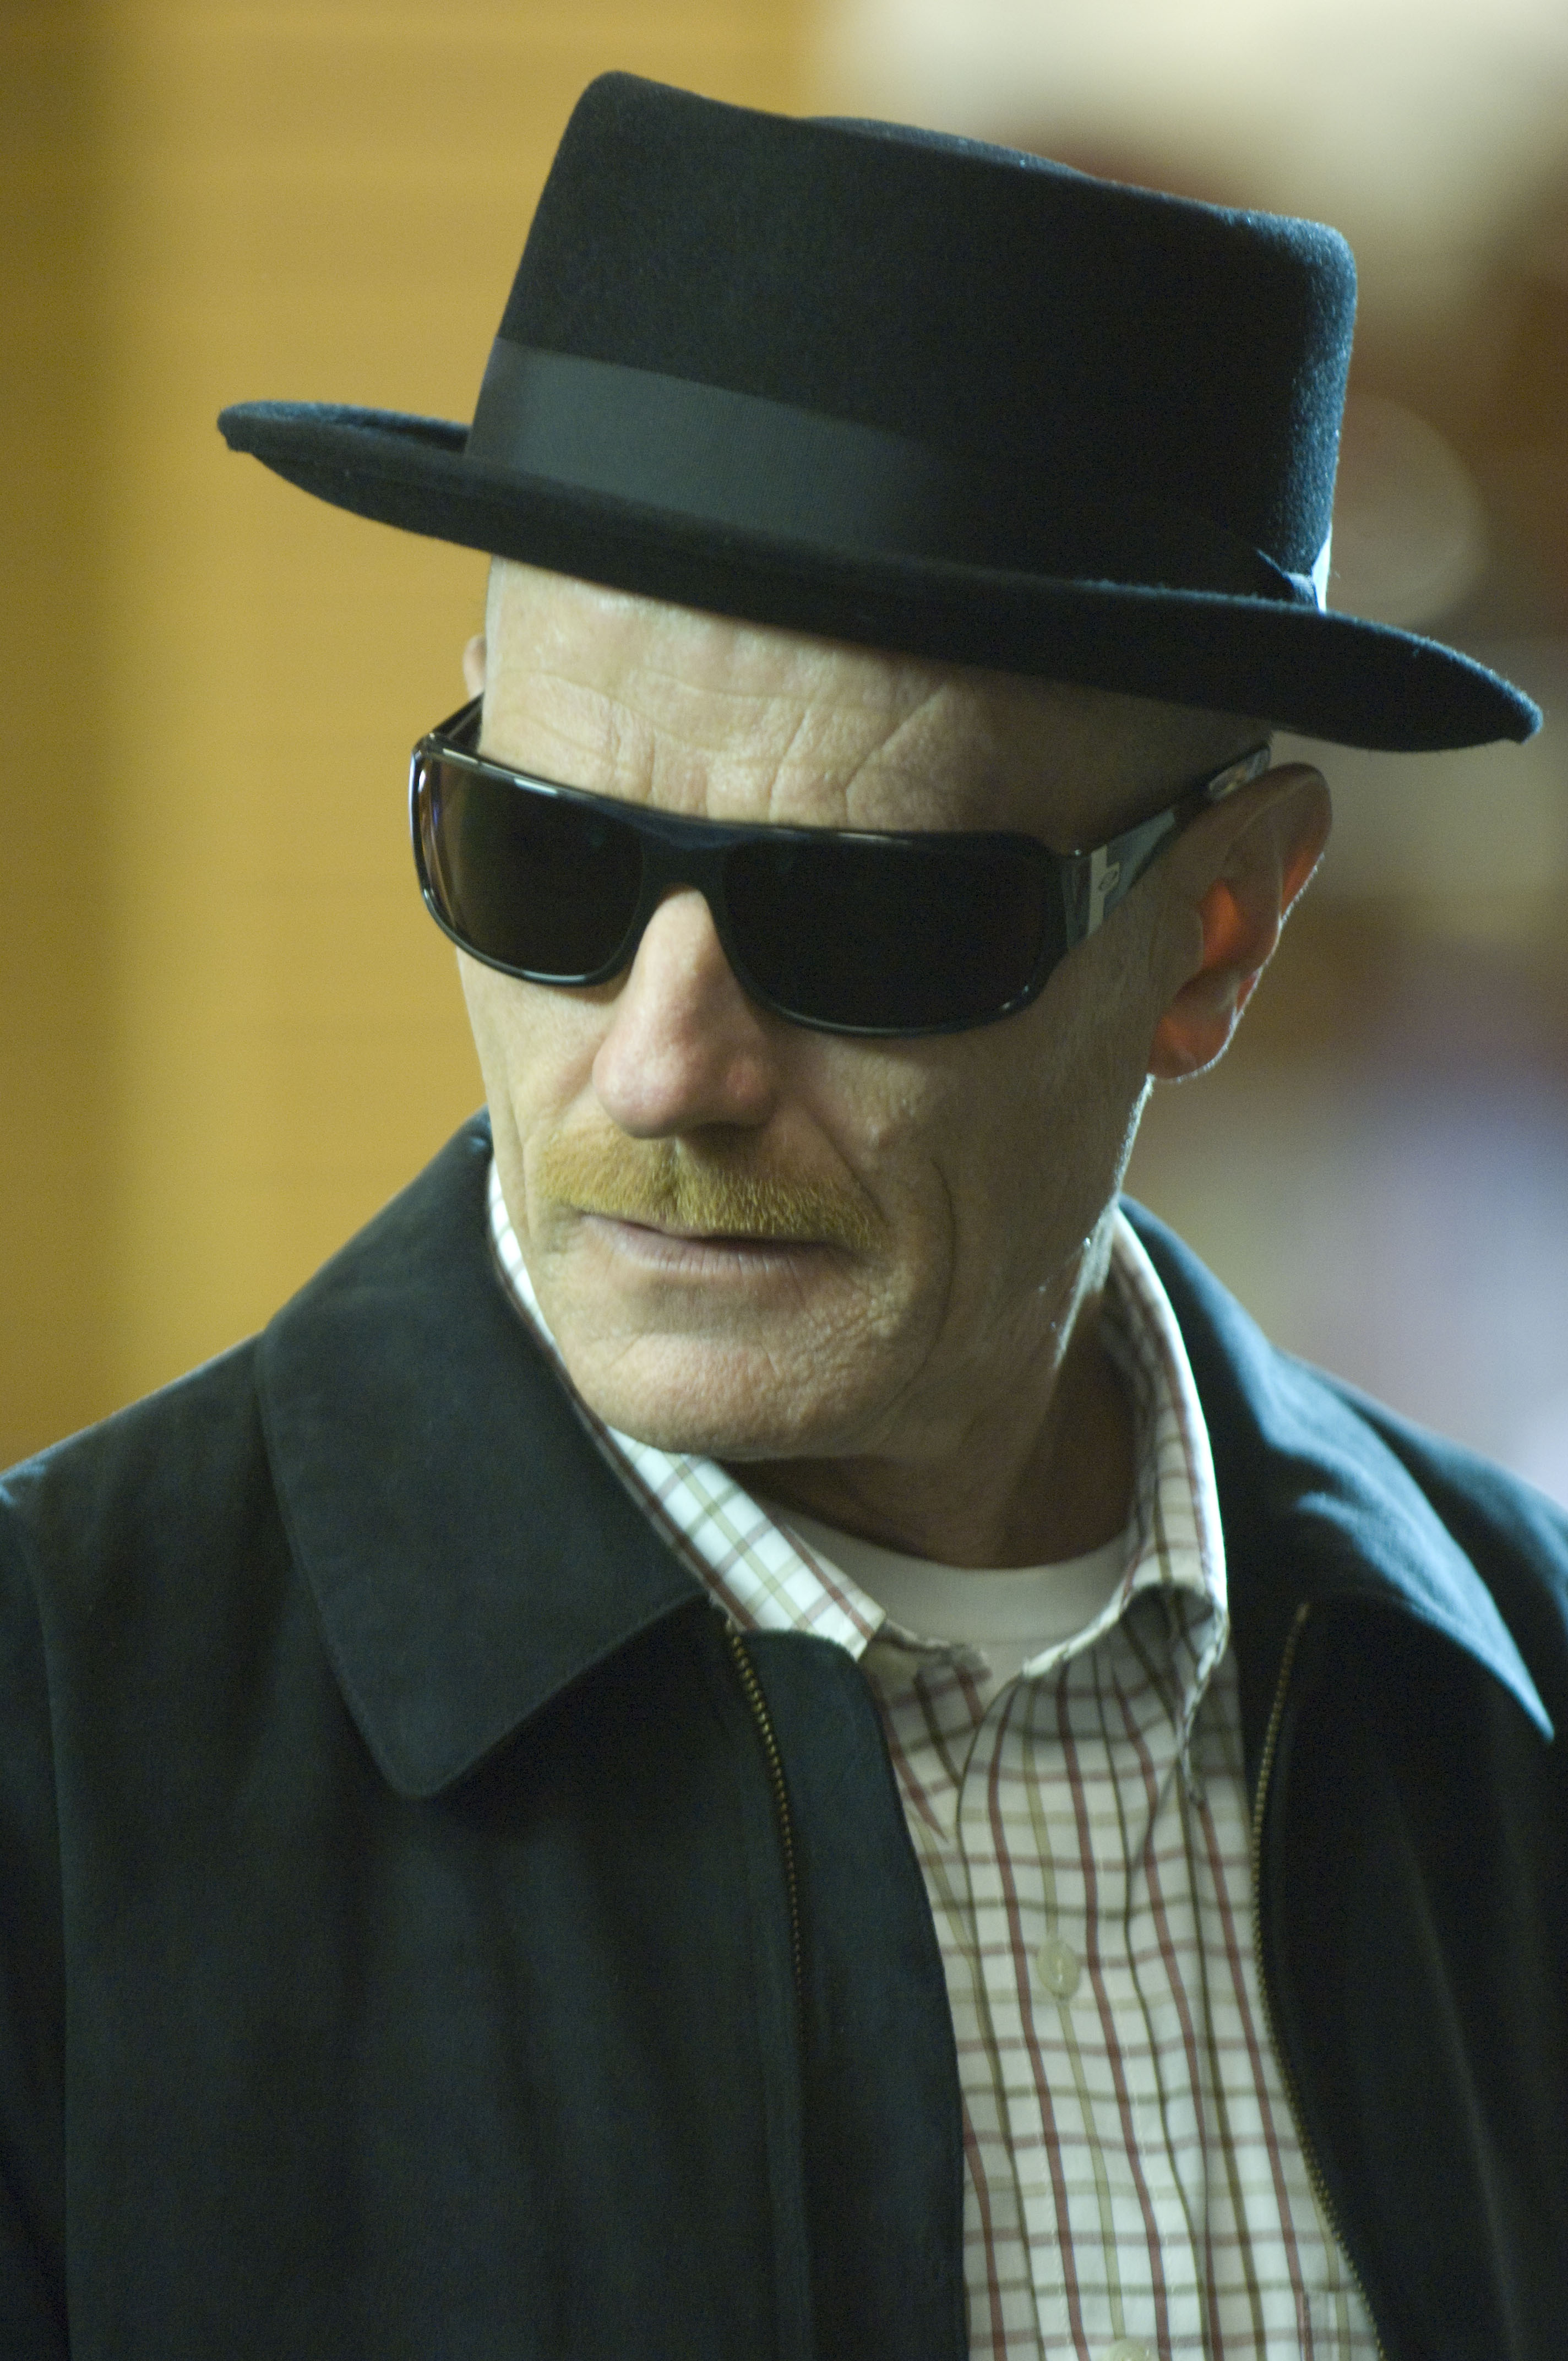 Walter White (Bryan Cranston) - Breaking Bad - Season 2, Episode 7 - Photo Credit: Lewis Jacobs/AMC